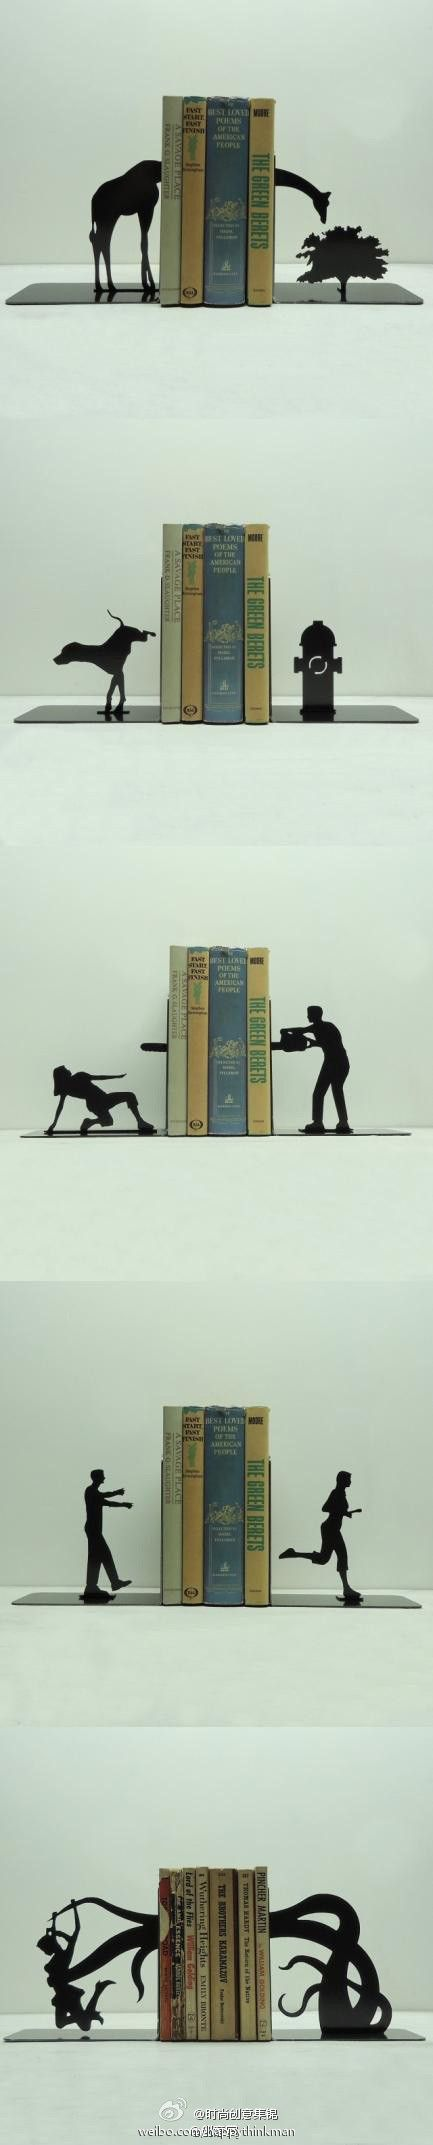 Very cool bookends